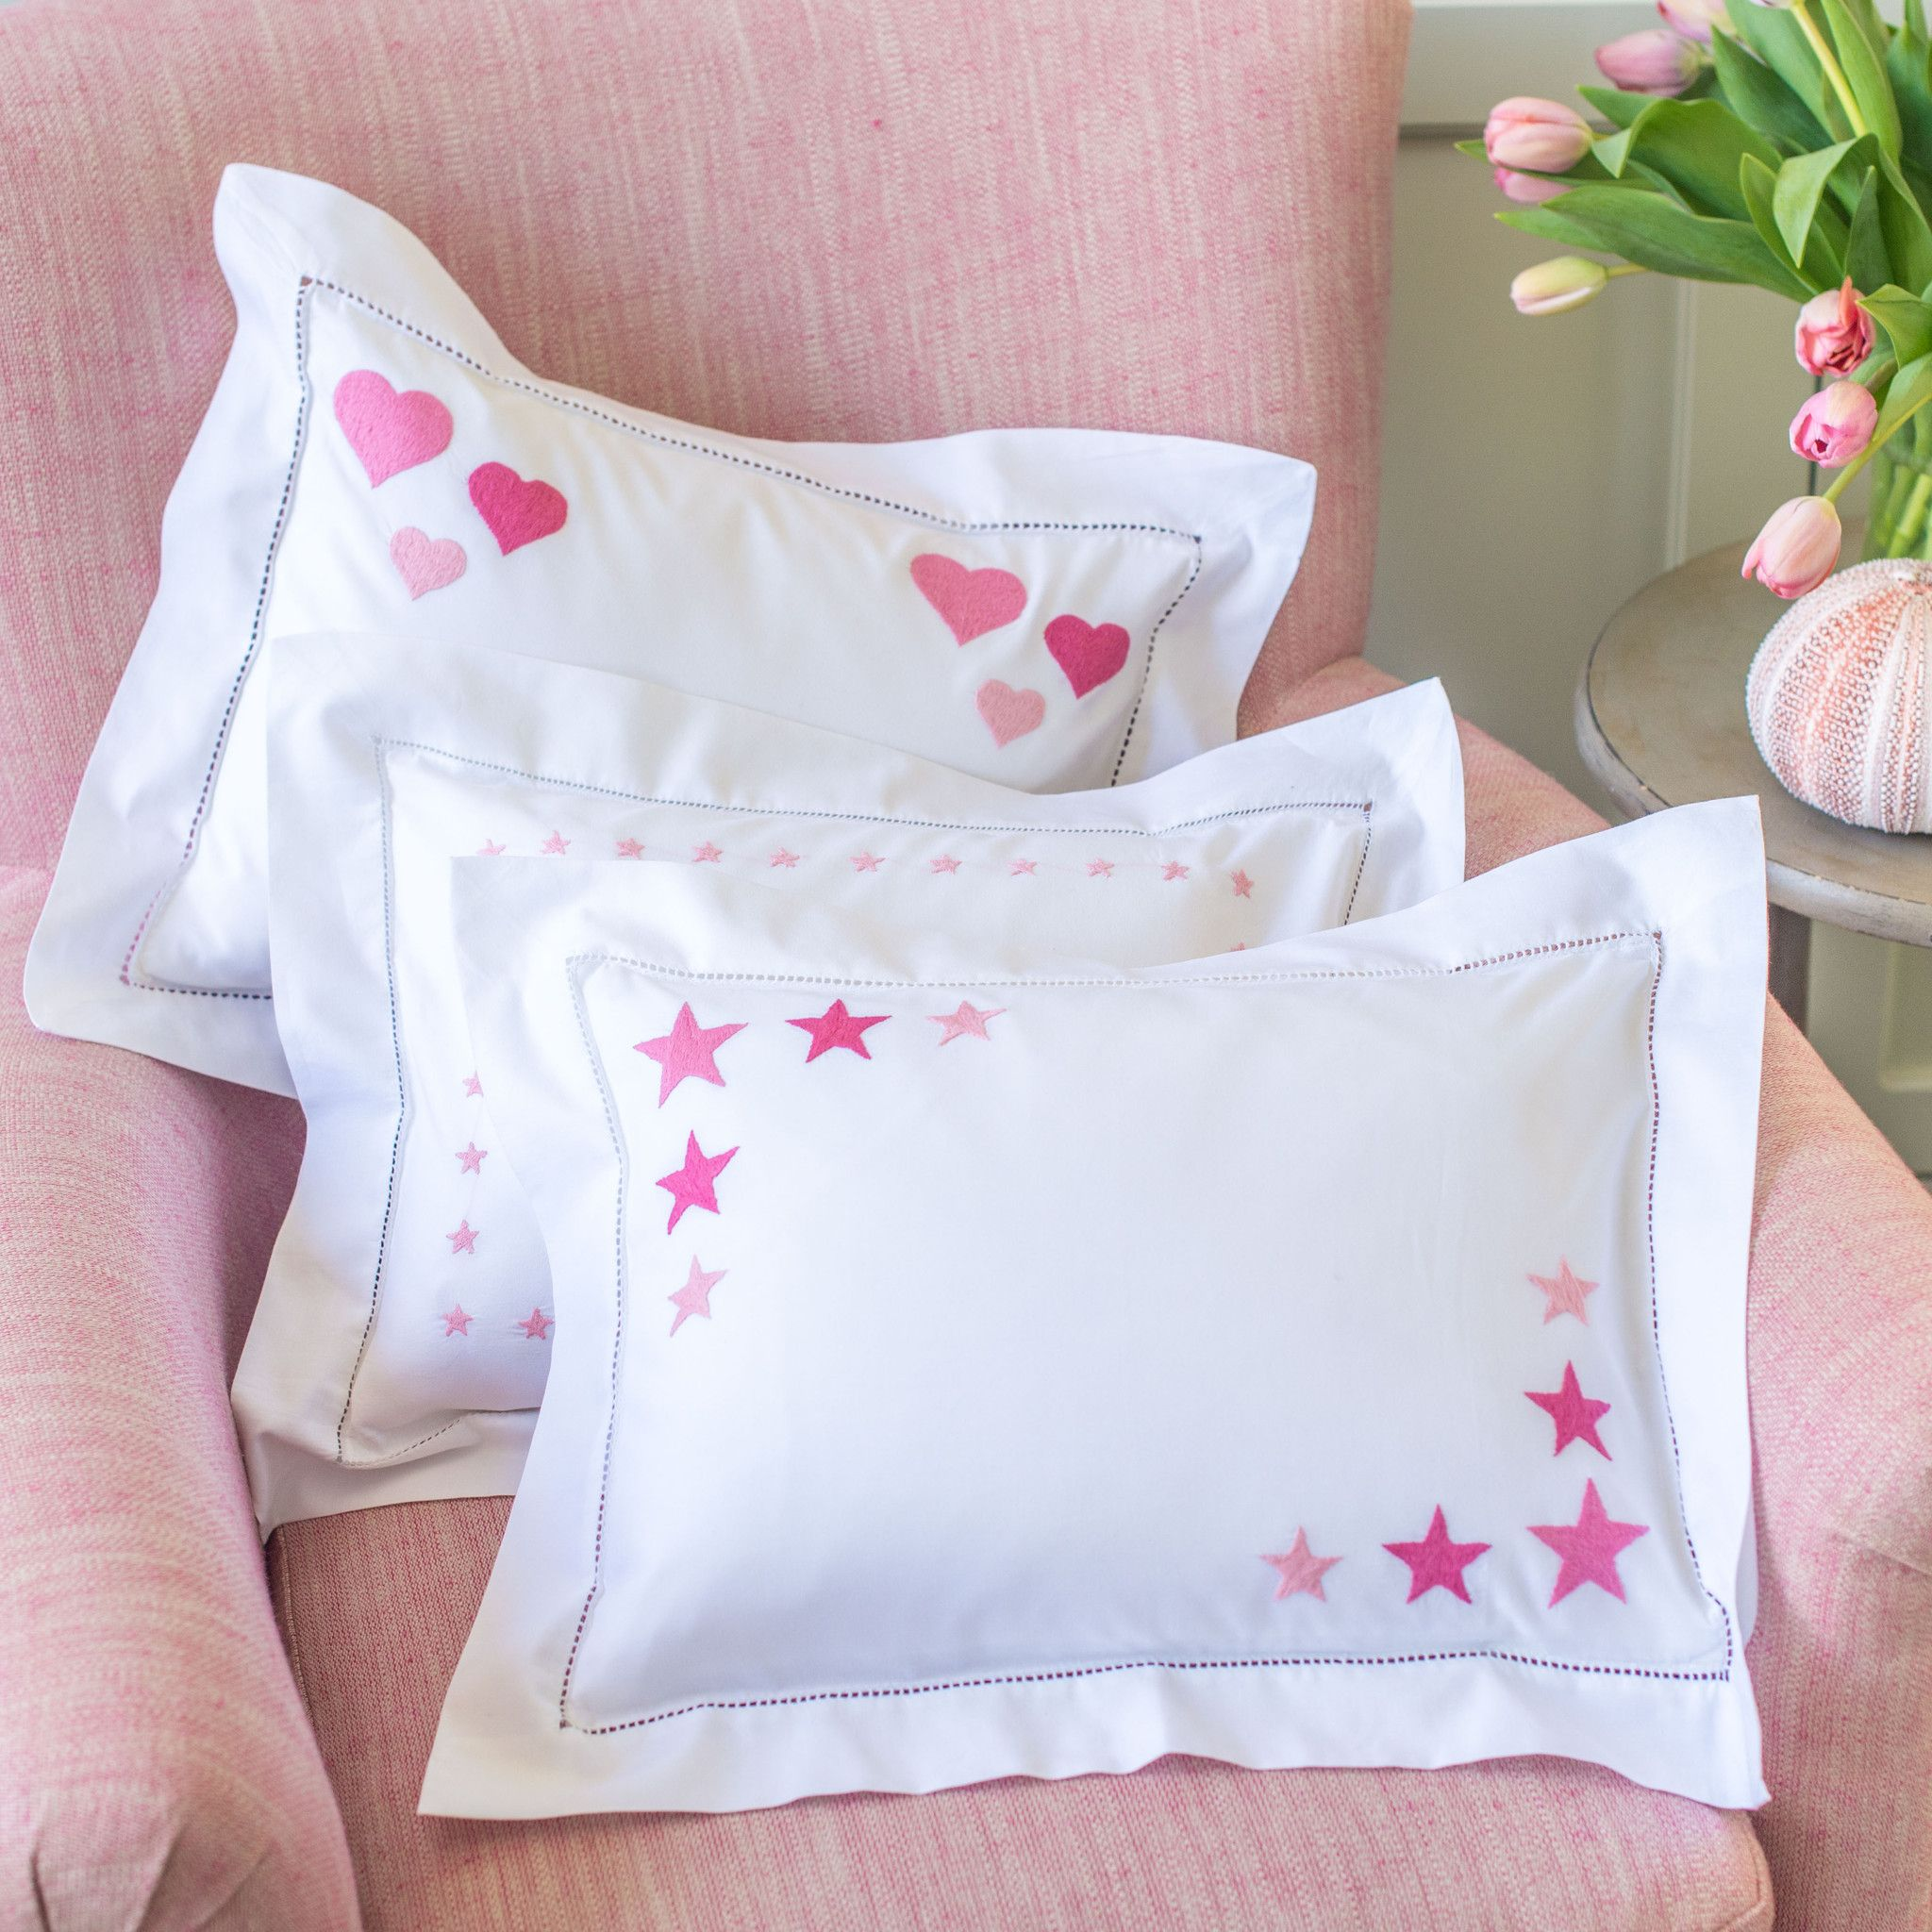 new baby pillowcase with